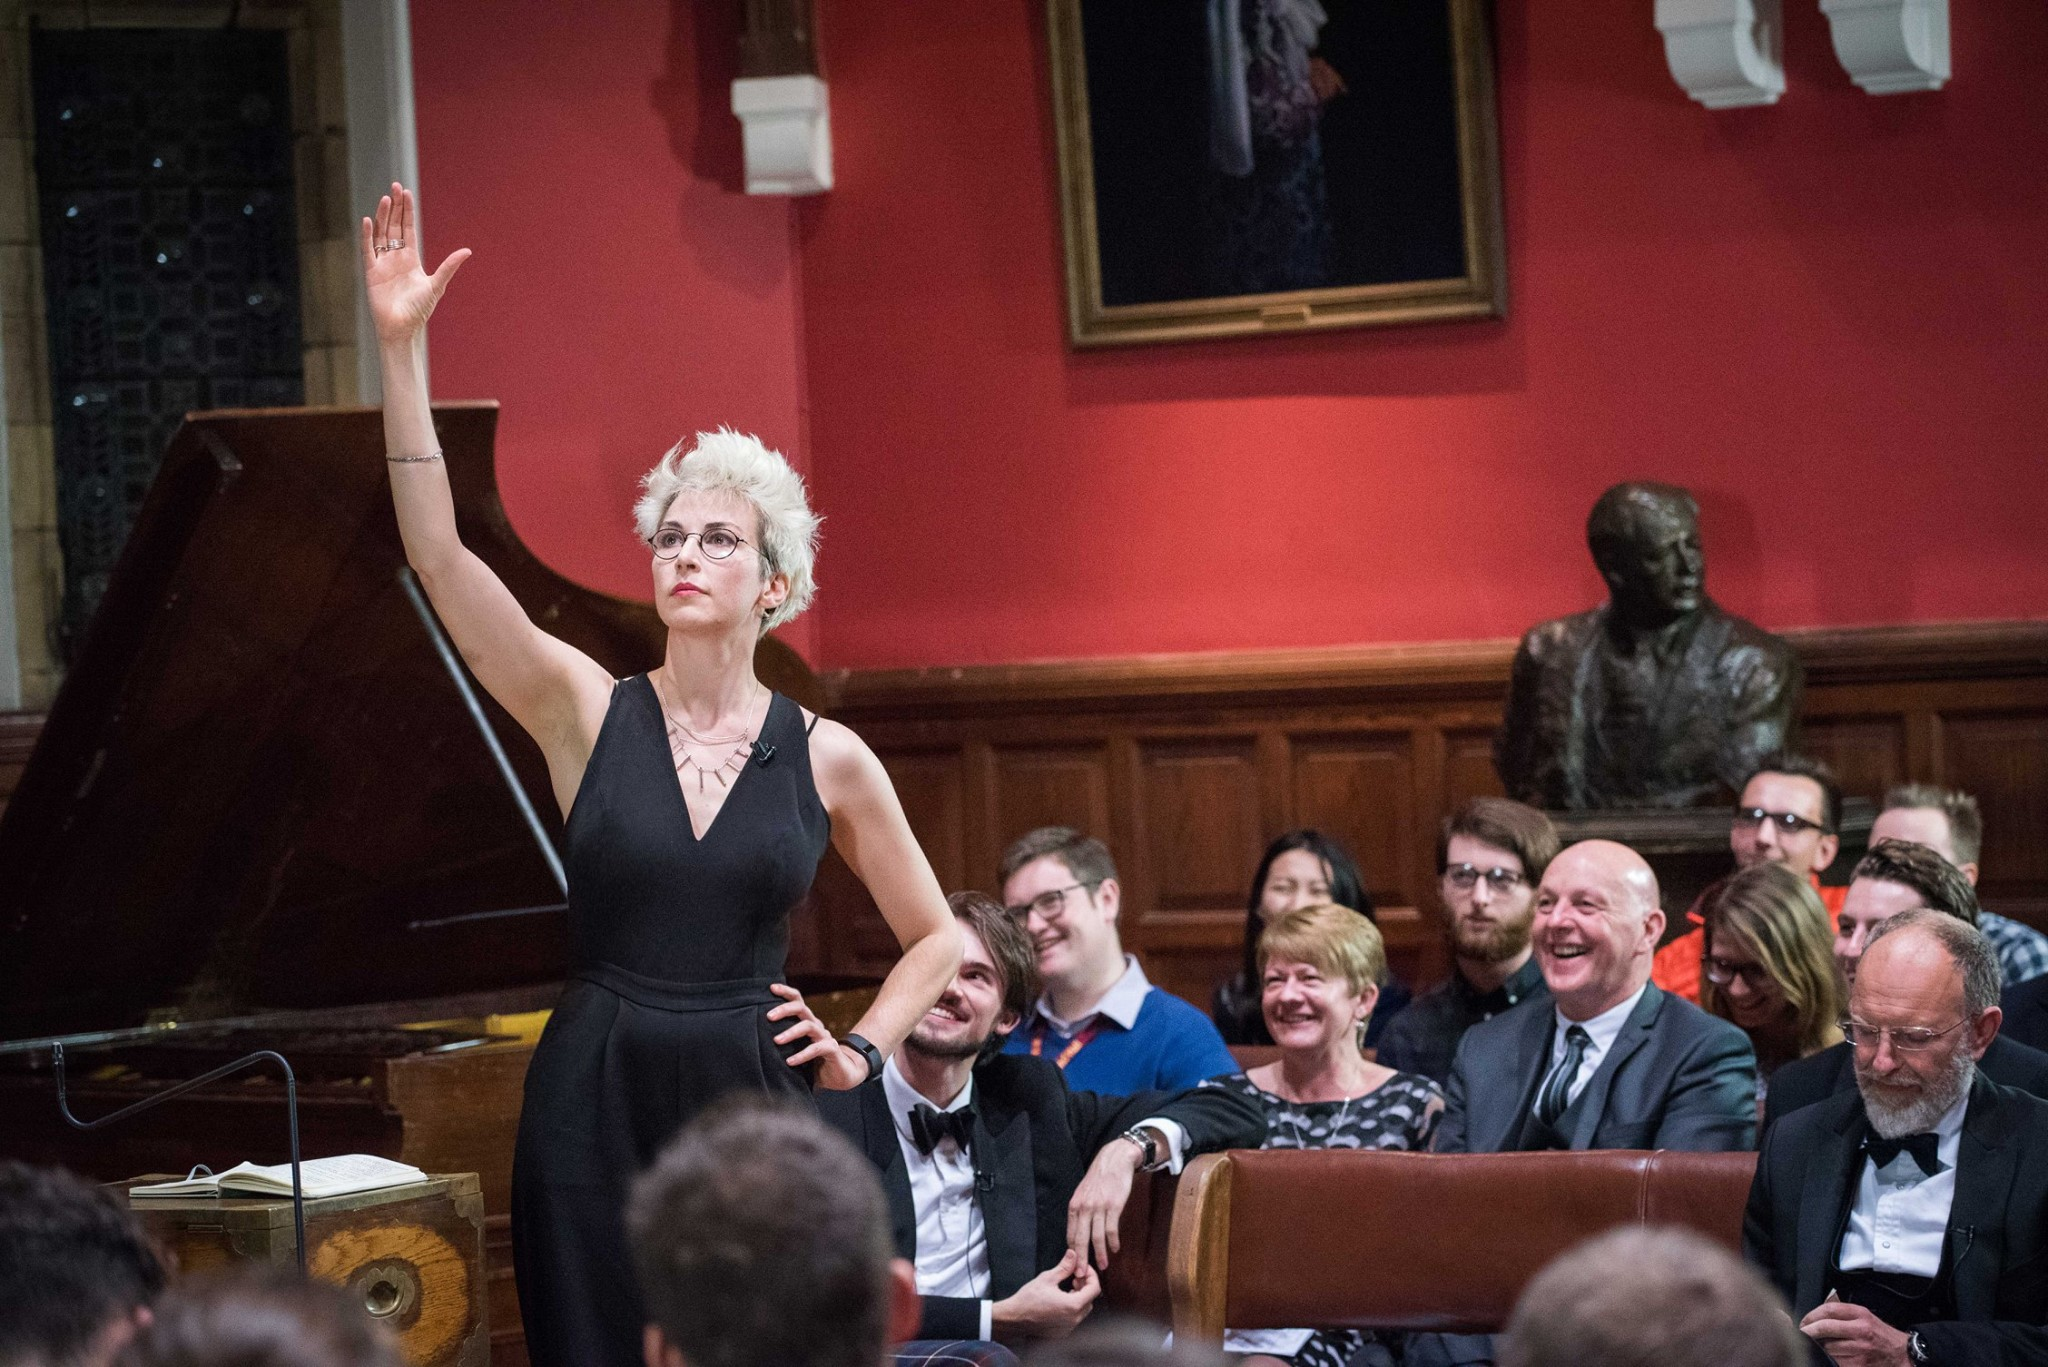 Debating Barry Cryer at The Oxford Union